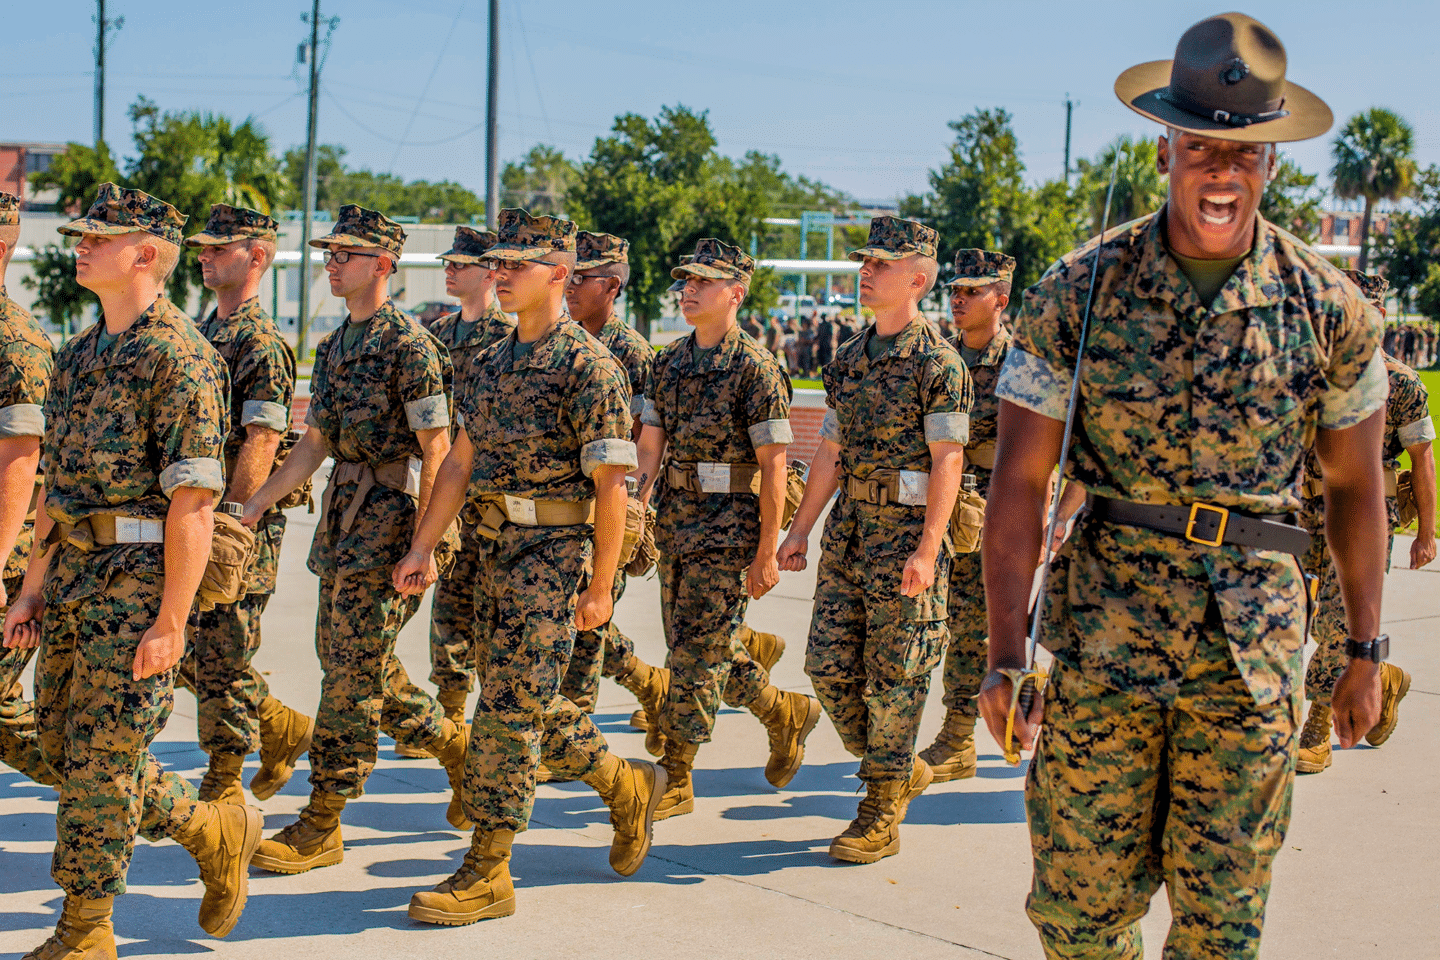 United States Army Base Fort Jackson Roblox Marine Corps Boot Camp At Parris Island Sandboxx